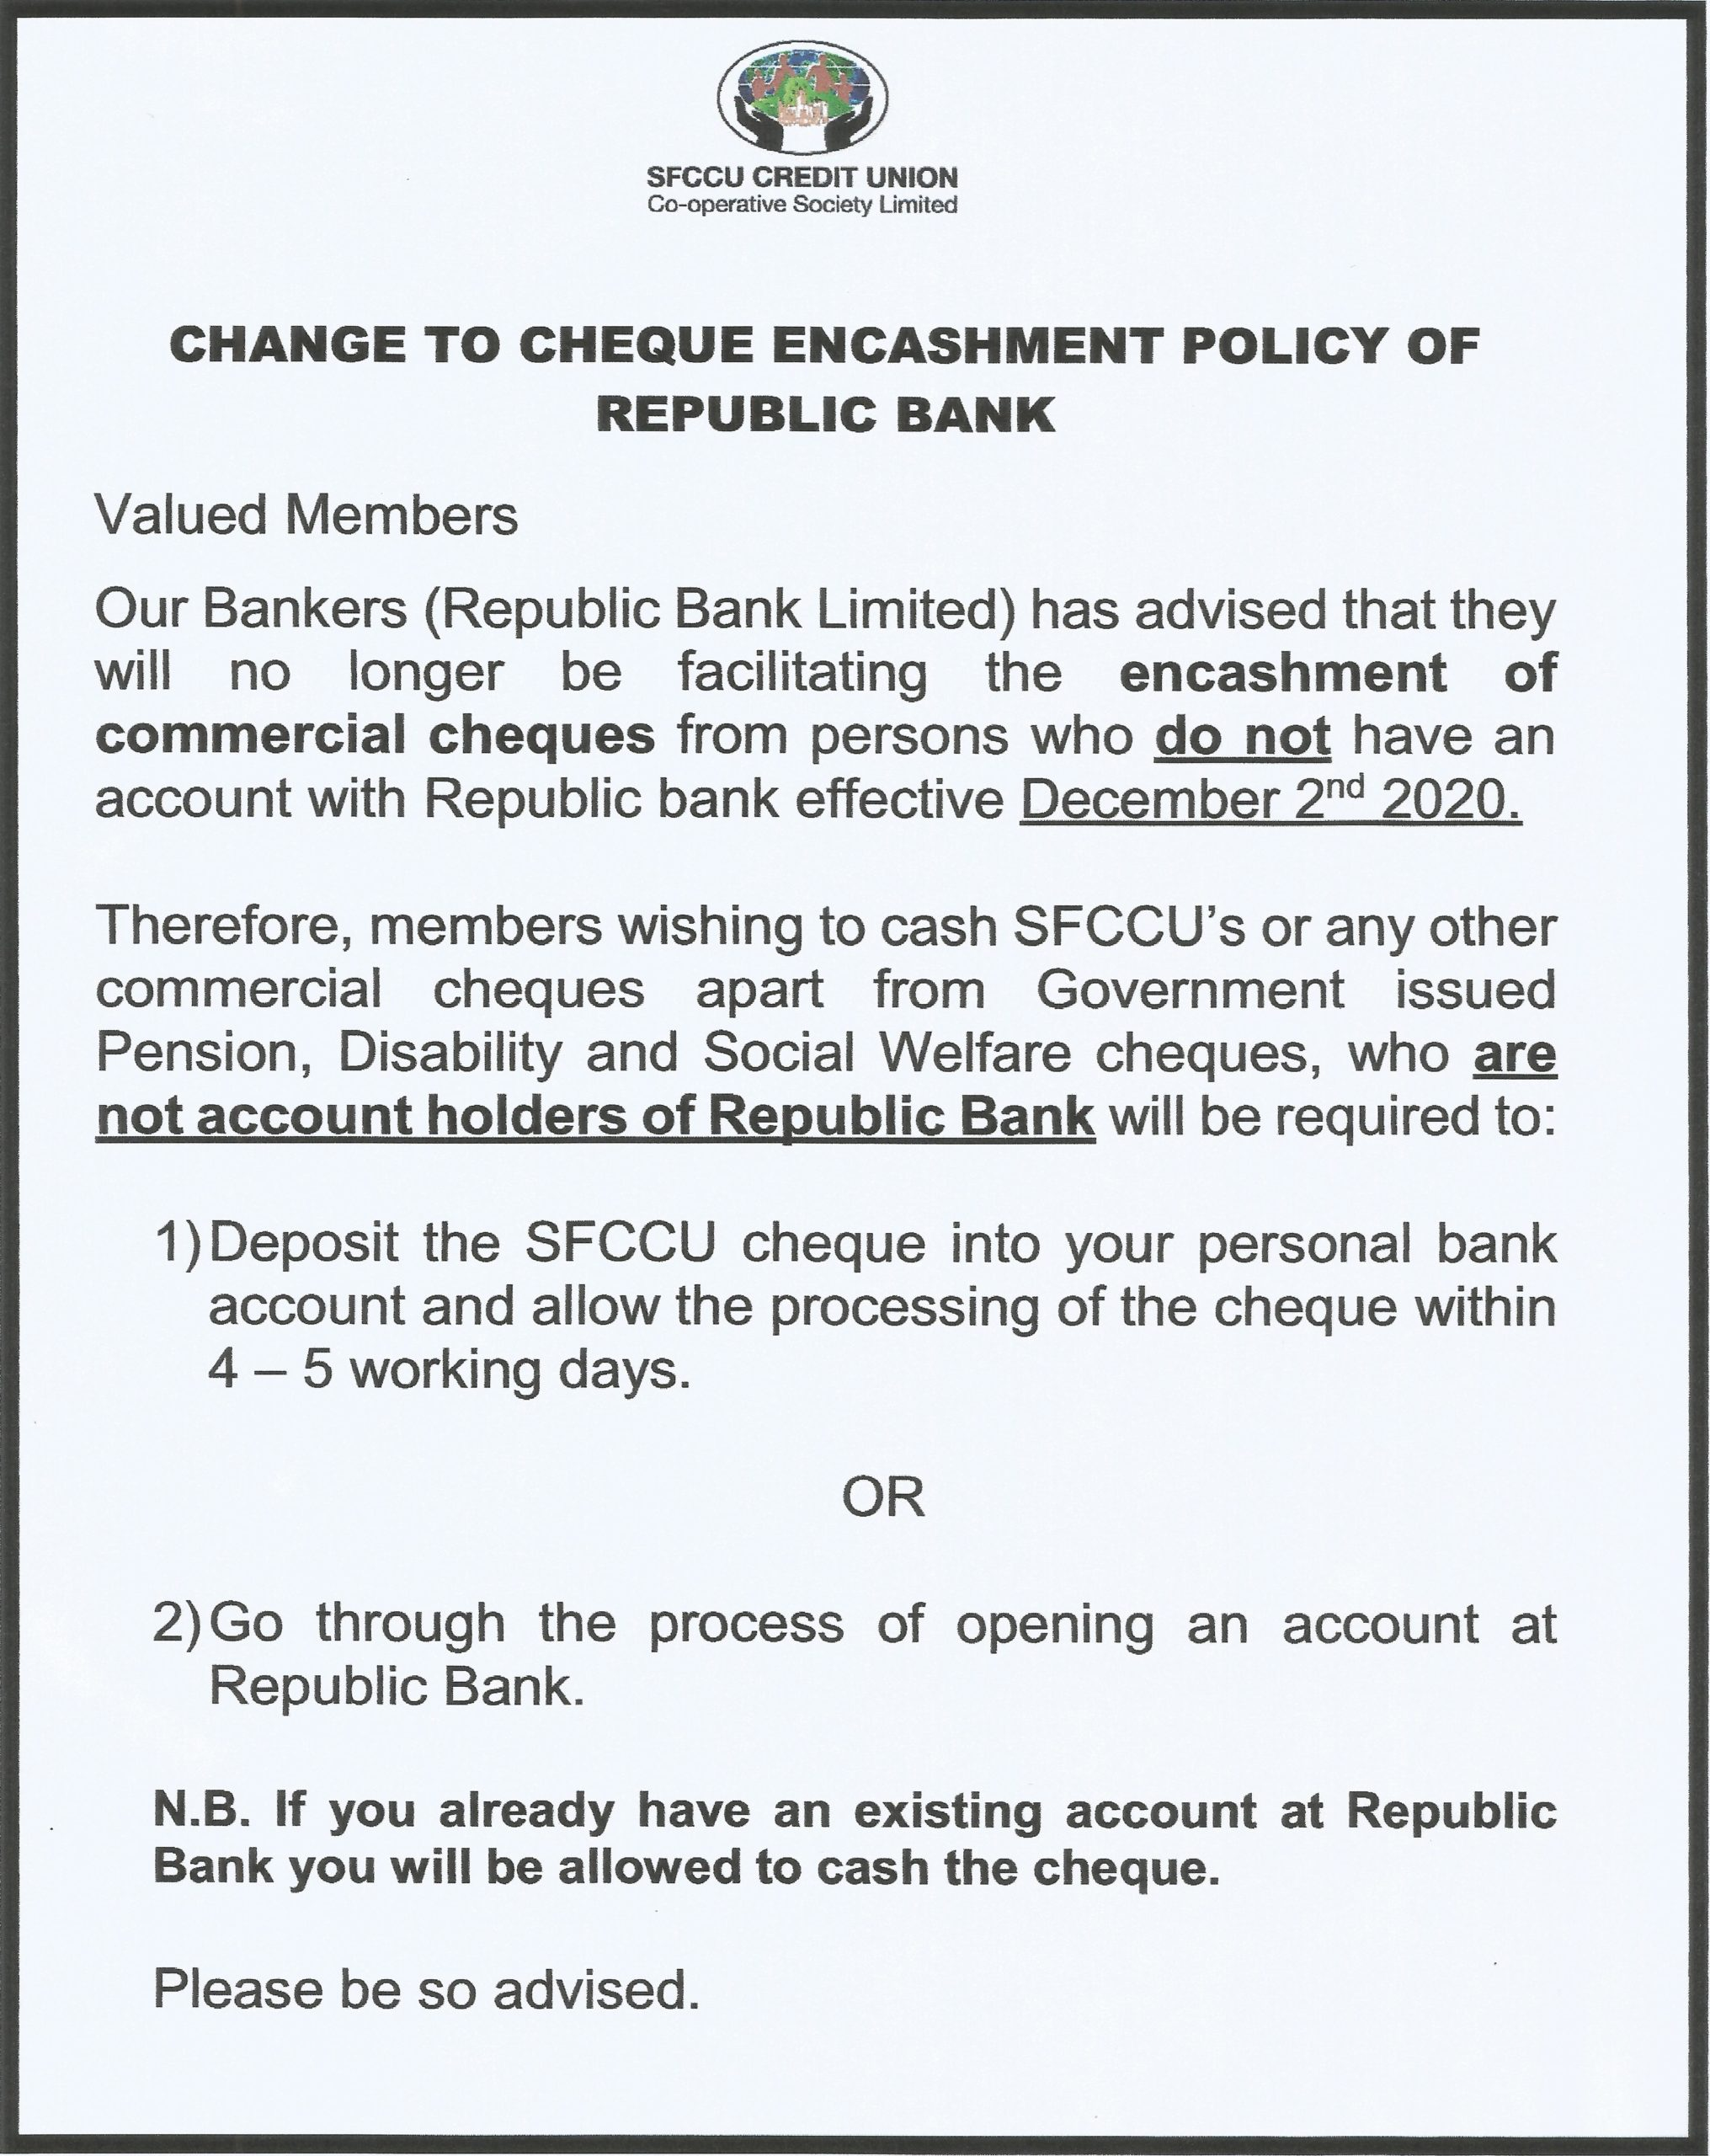 Notice - Change to Cheque Encashment Policy of Republic Bank